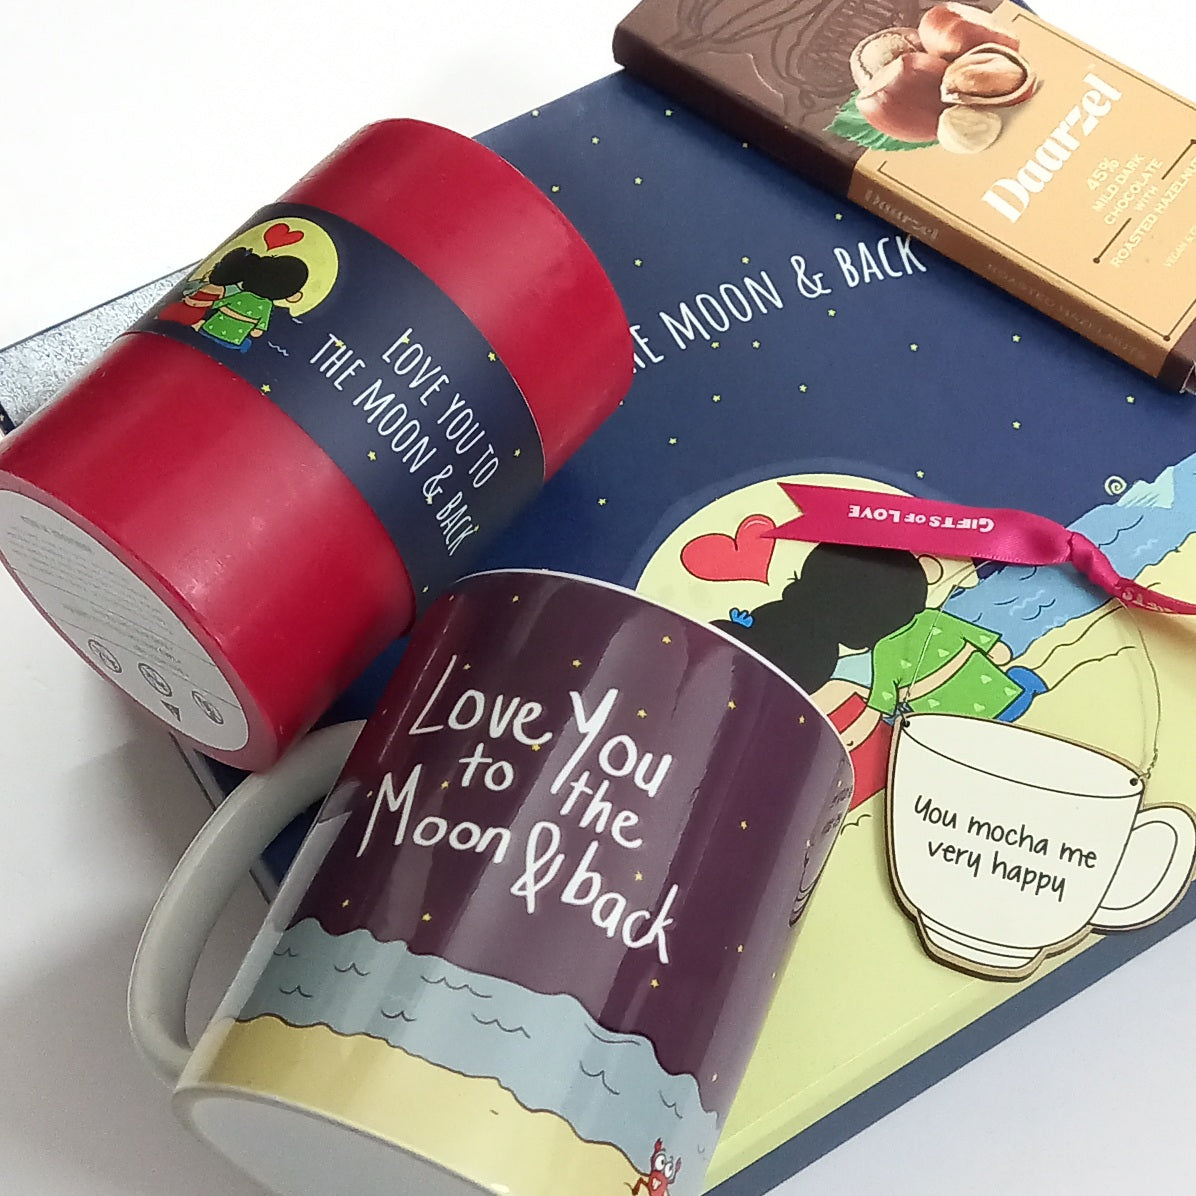 Share Your Love Gift Set | Love You to the Moon & Back